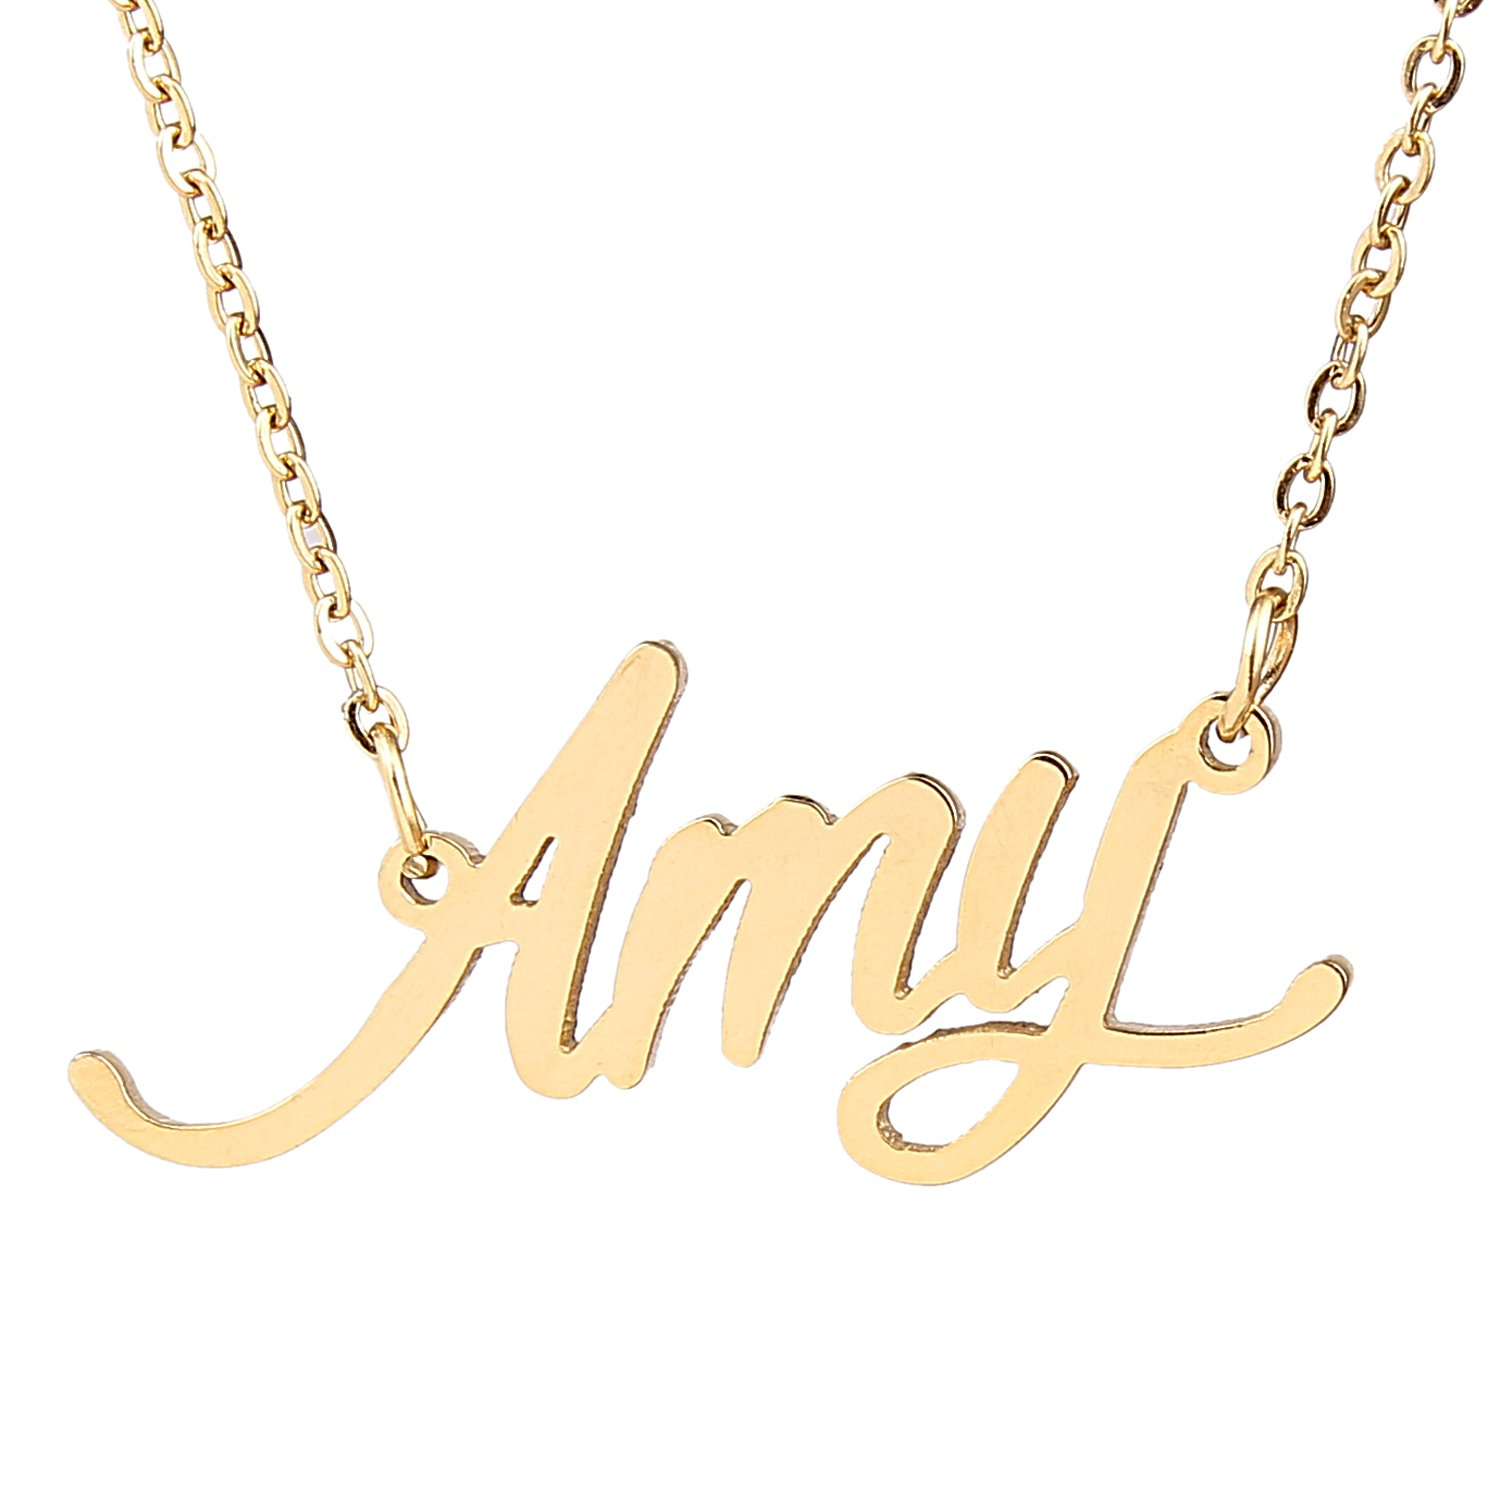 nameplate gold v name pendant collier handmade cursive choker necklaces silver from rose item infinity jewelry personalized necklace custom chain attract in